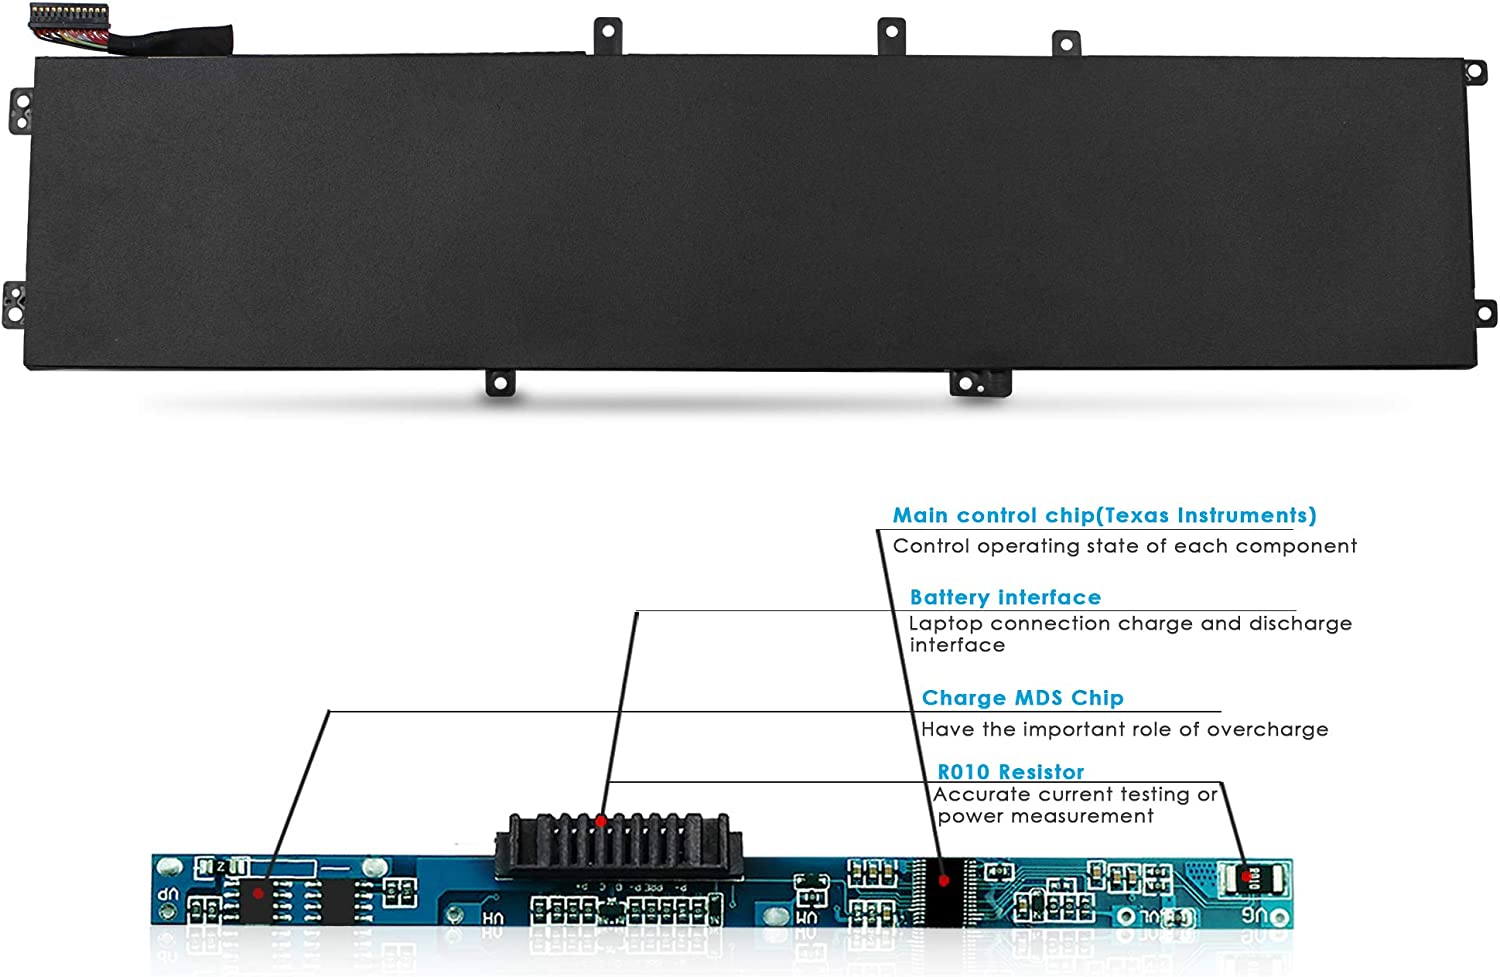 Fits P//N 4GVGH 1P6KD 11.4V // 84Wh DELL XPS 5510 Battery XPS 15 9550 Series AYIPE High-Performance Replacement Laptop Battery for DELL Precision 5510